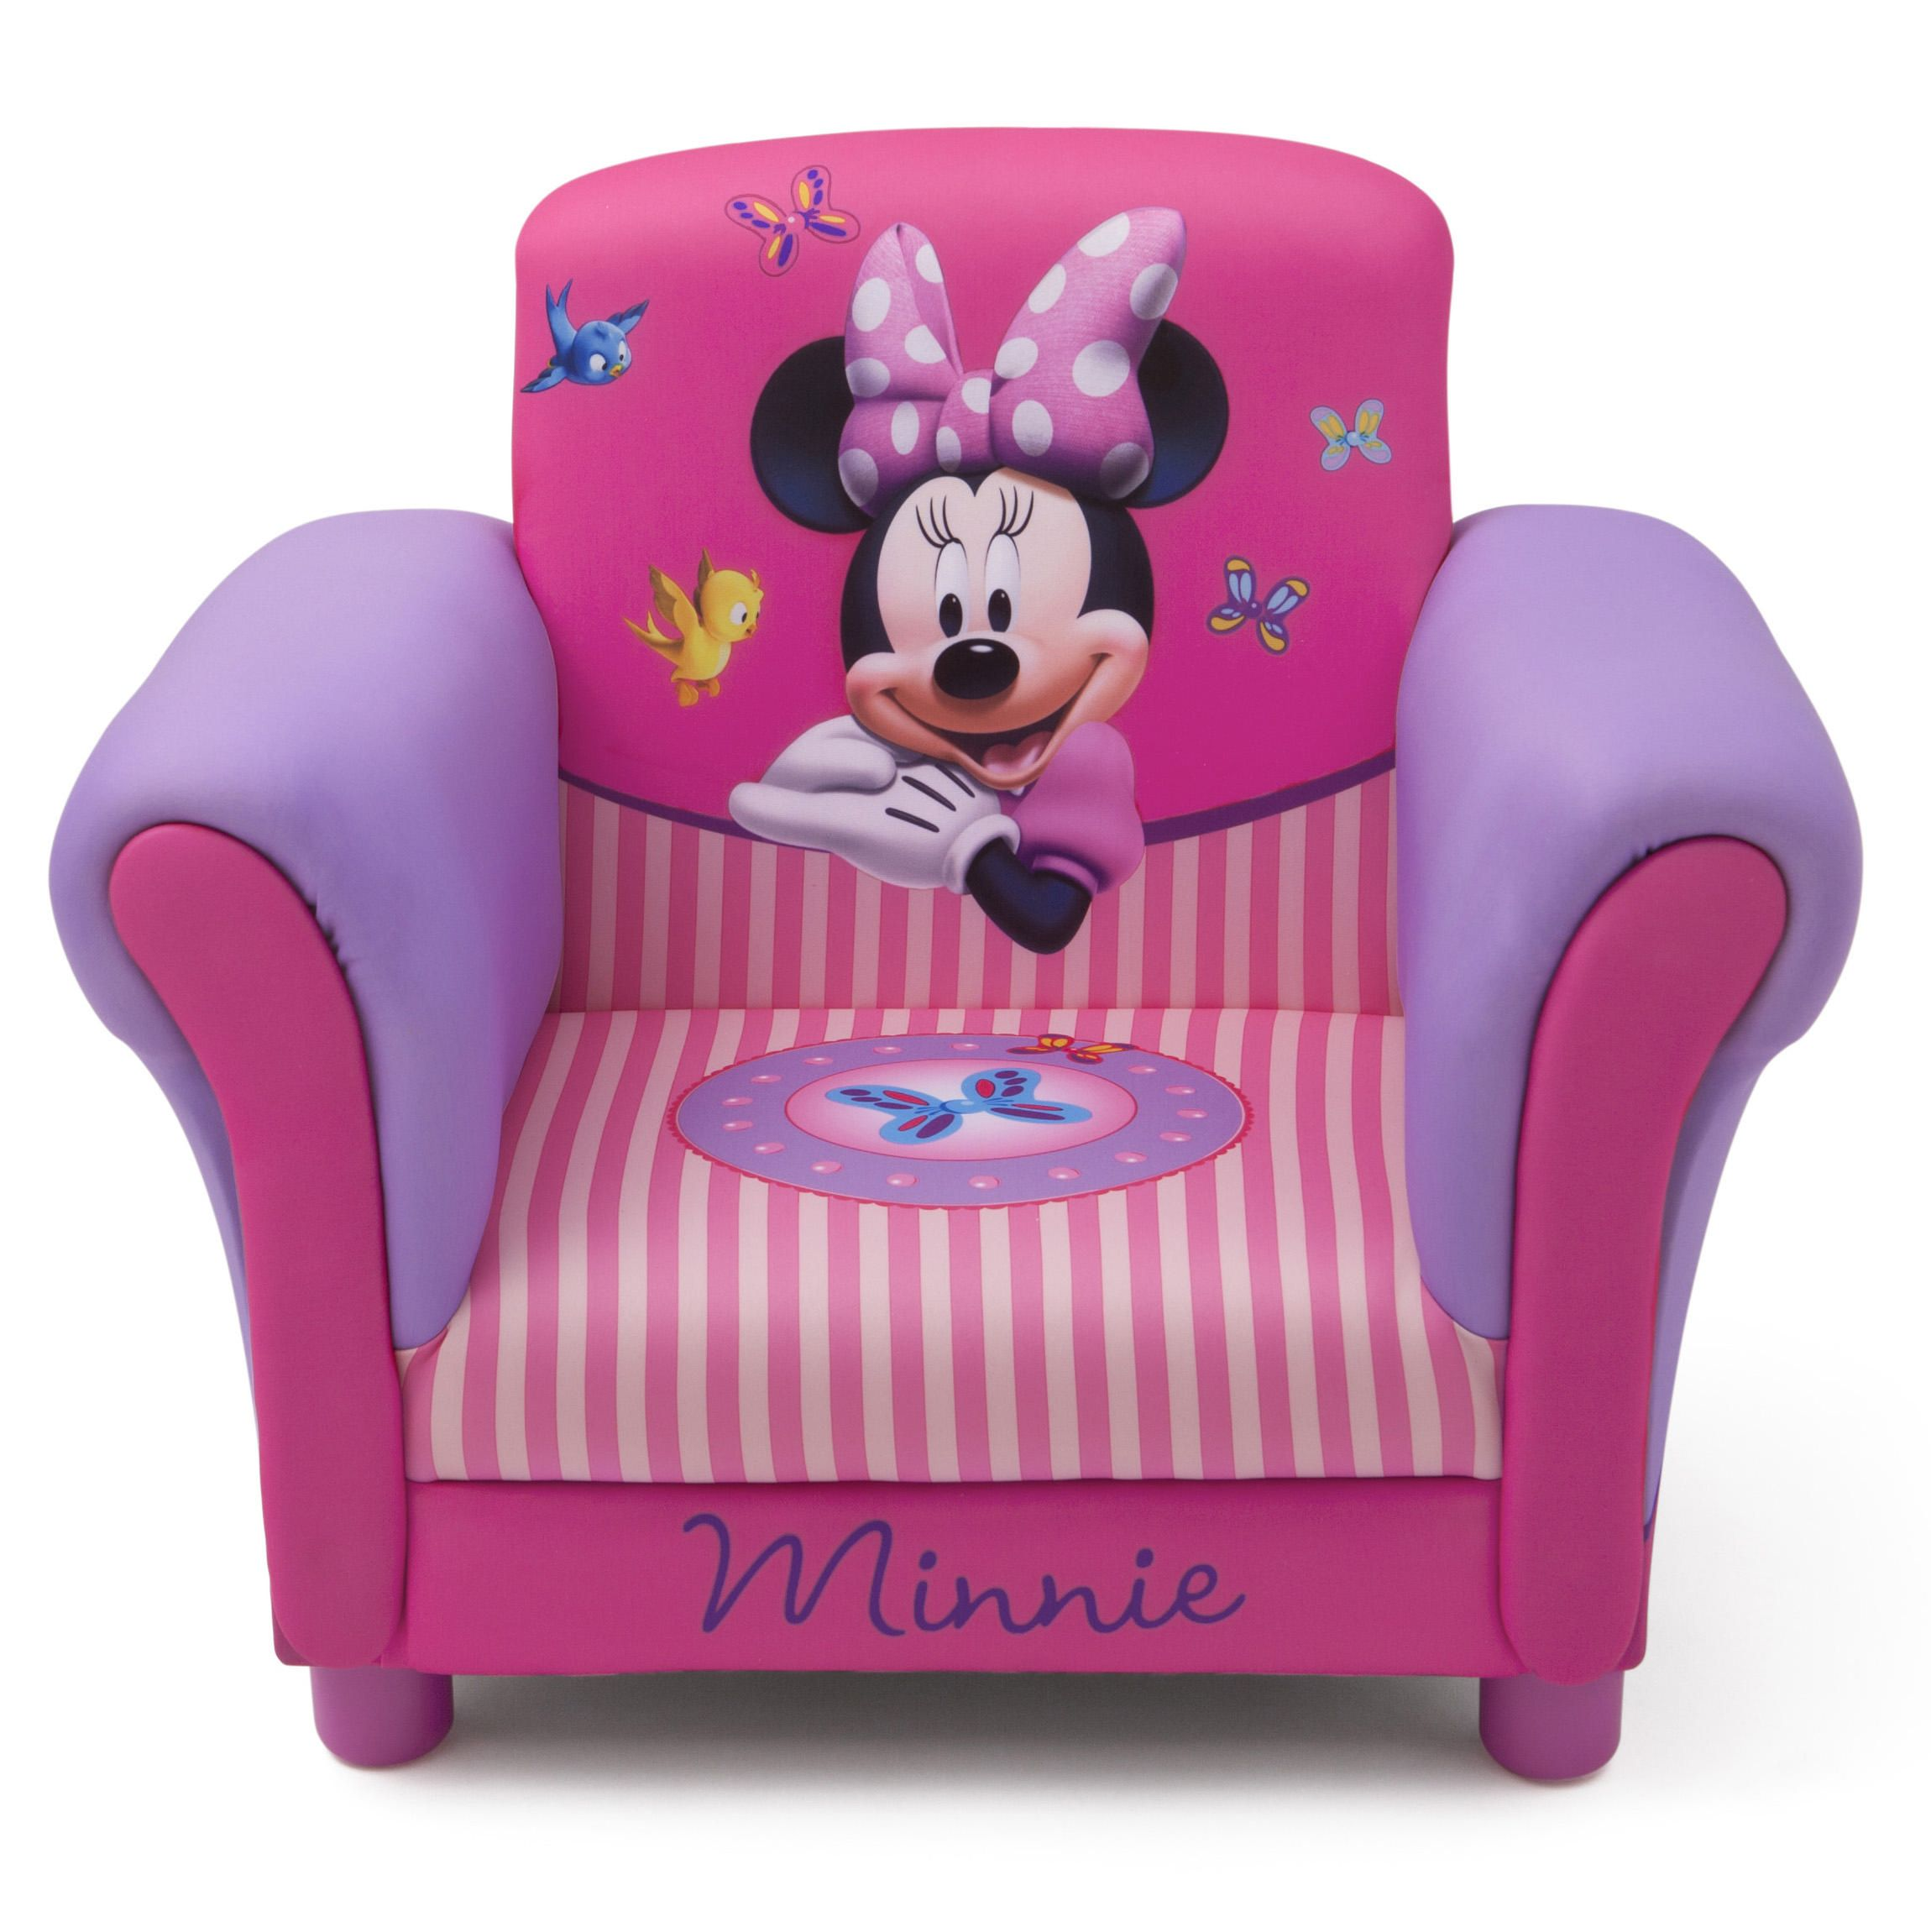 Lila Minnie Mouse Kleinkind Bett, Kinder Stühle Minnie Mouse ...